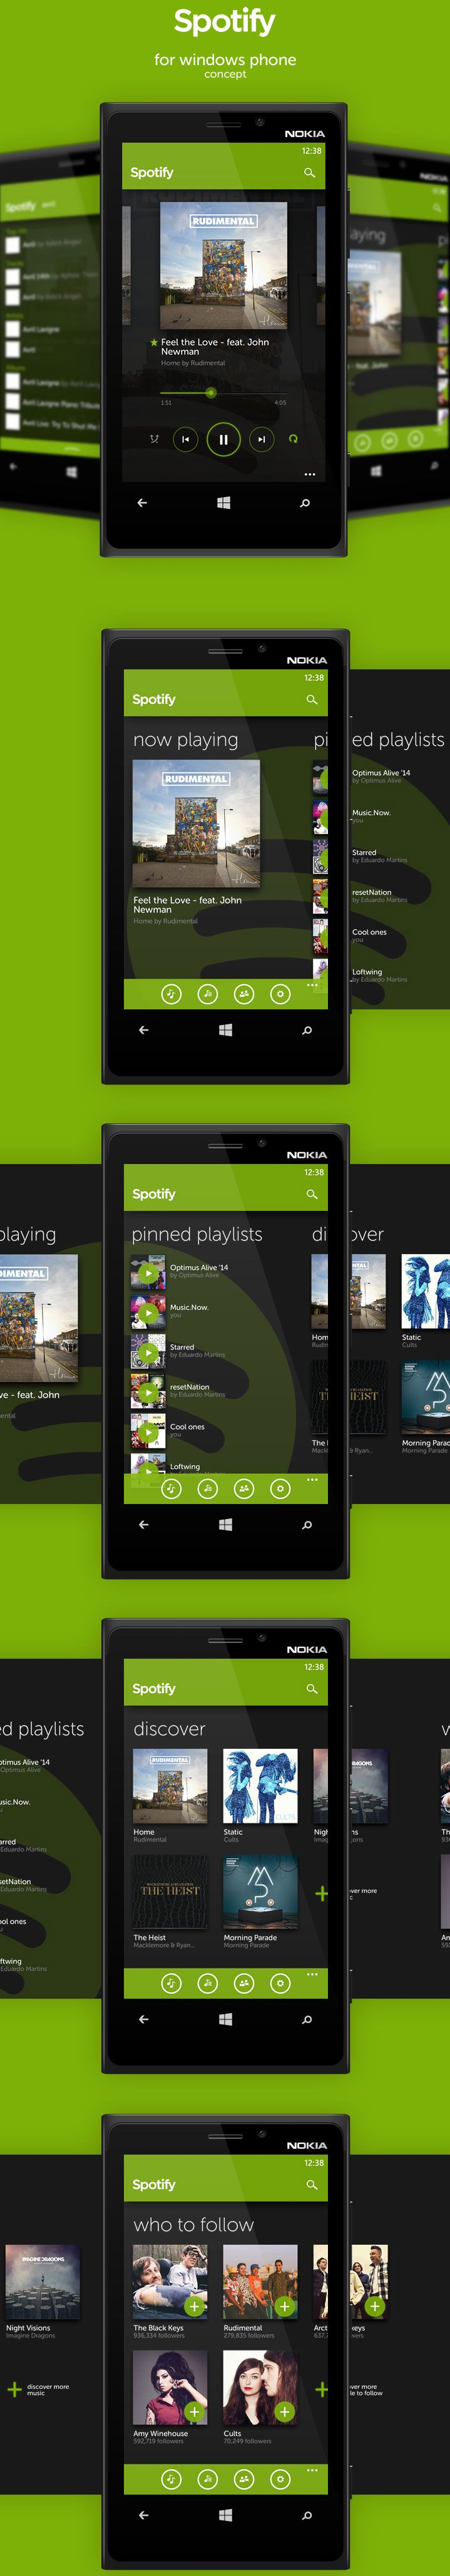 Spotify for #Windows Phone